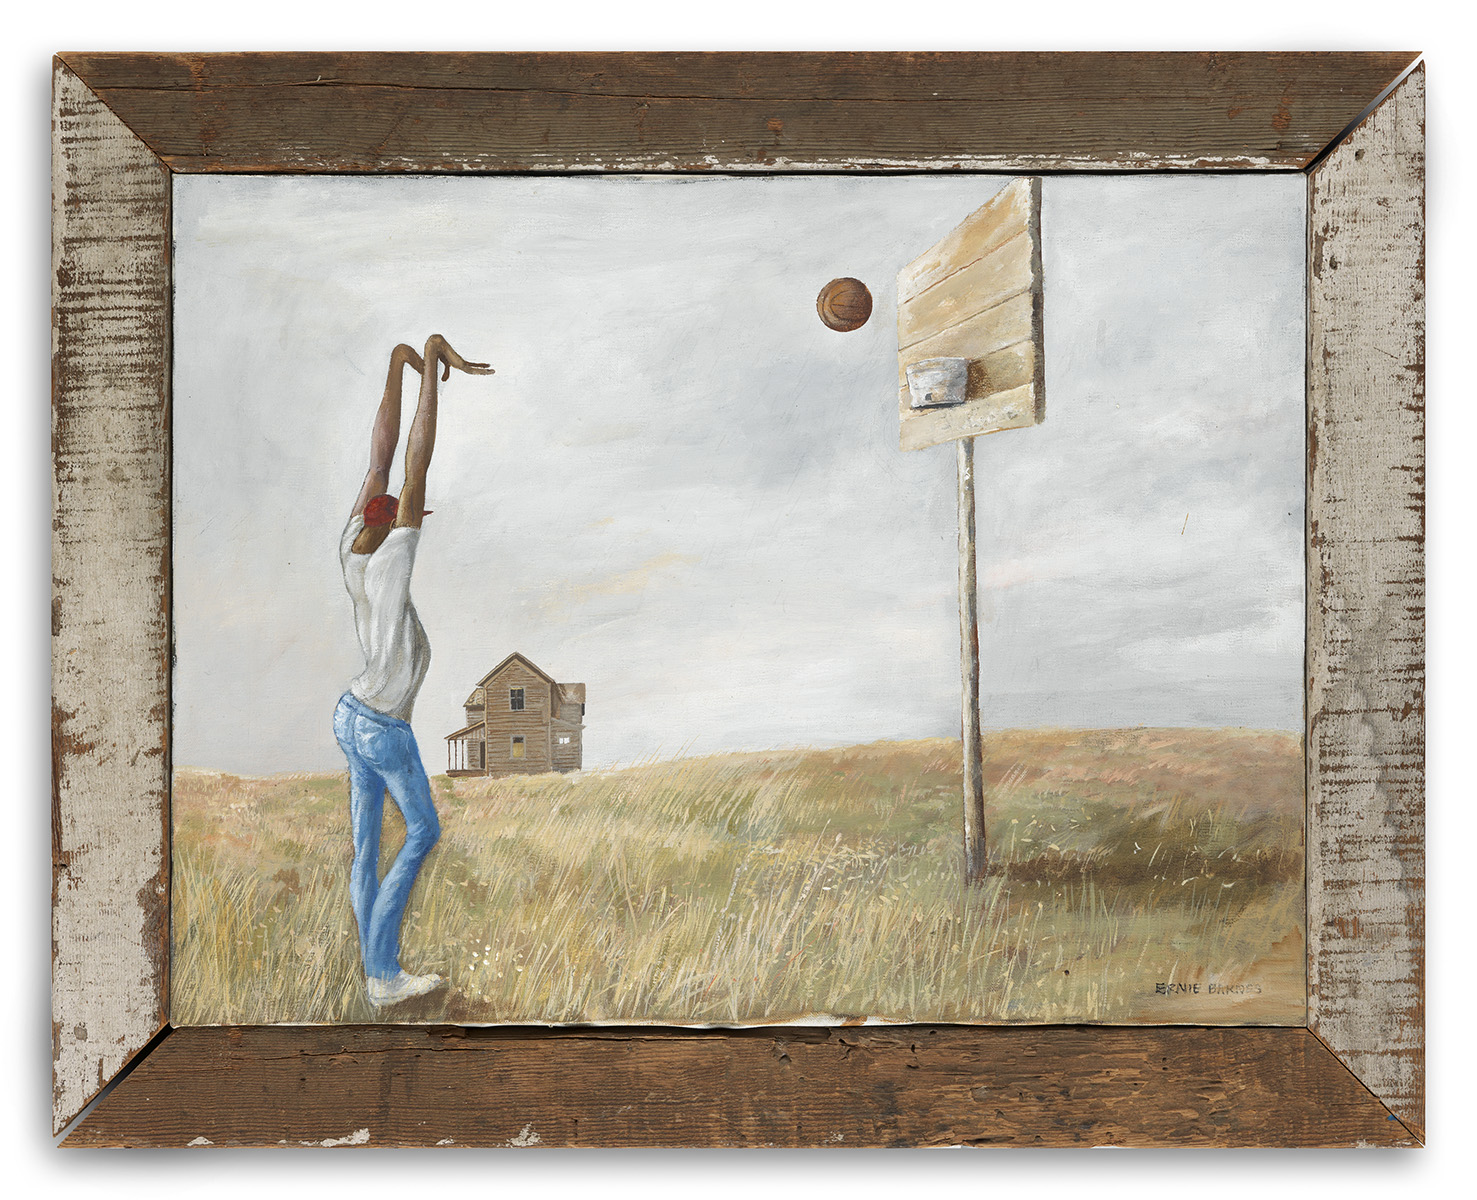 Ernie Barnes (1938-2009), In the Beginning, c.1970, acrylic on cotton canvas, 18 x 24 inches. Brigham Young University Museum of Art, purchased with funds provided by Curtis Atkisson, 2020.